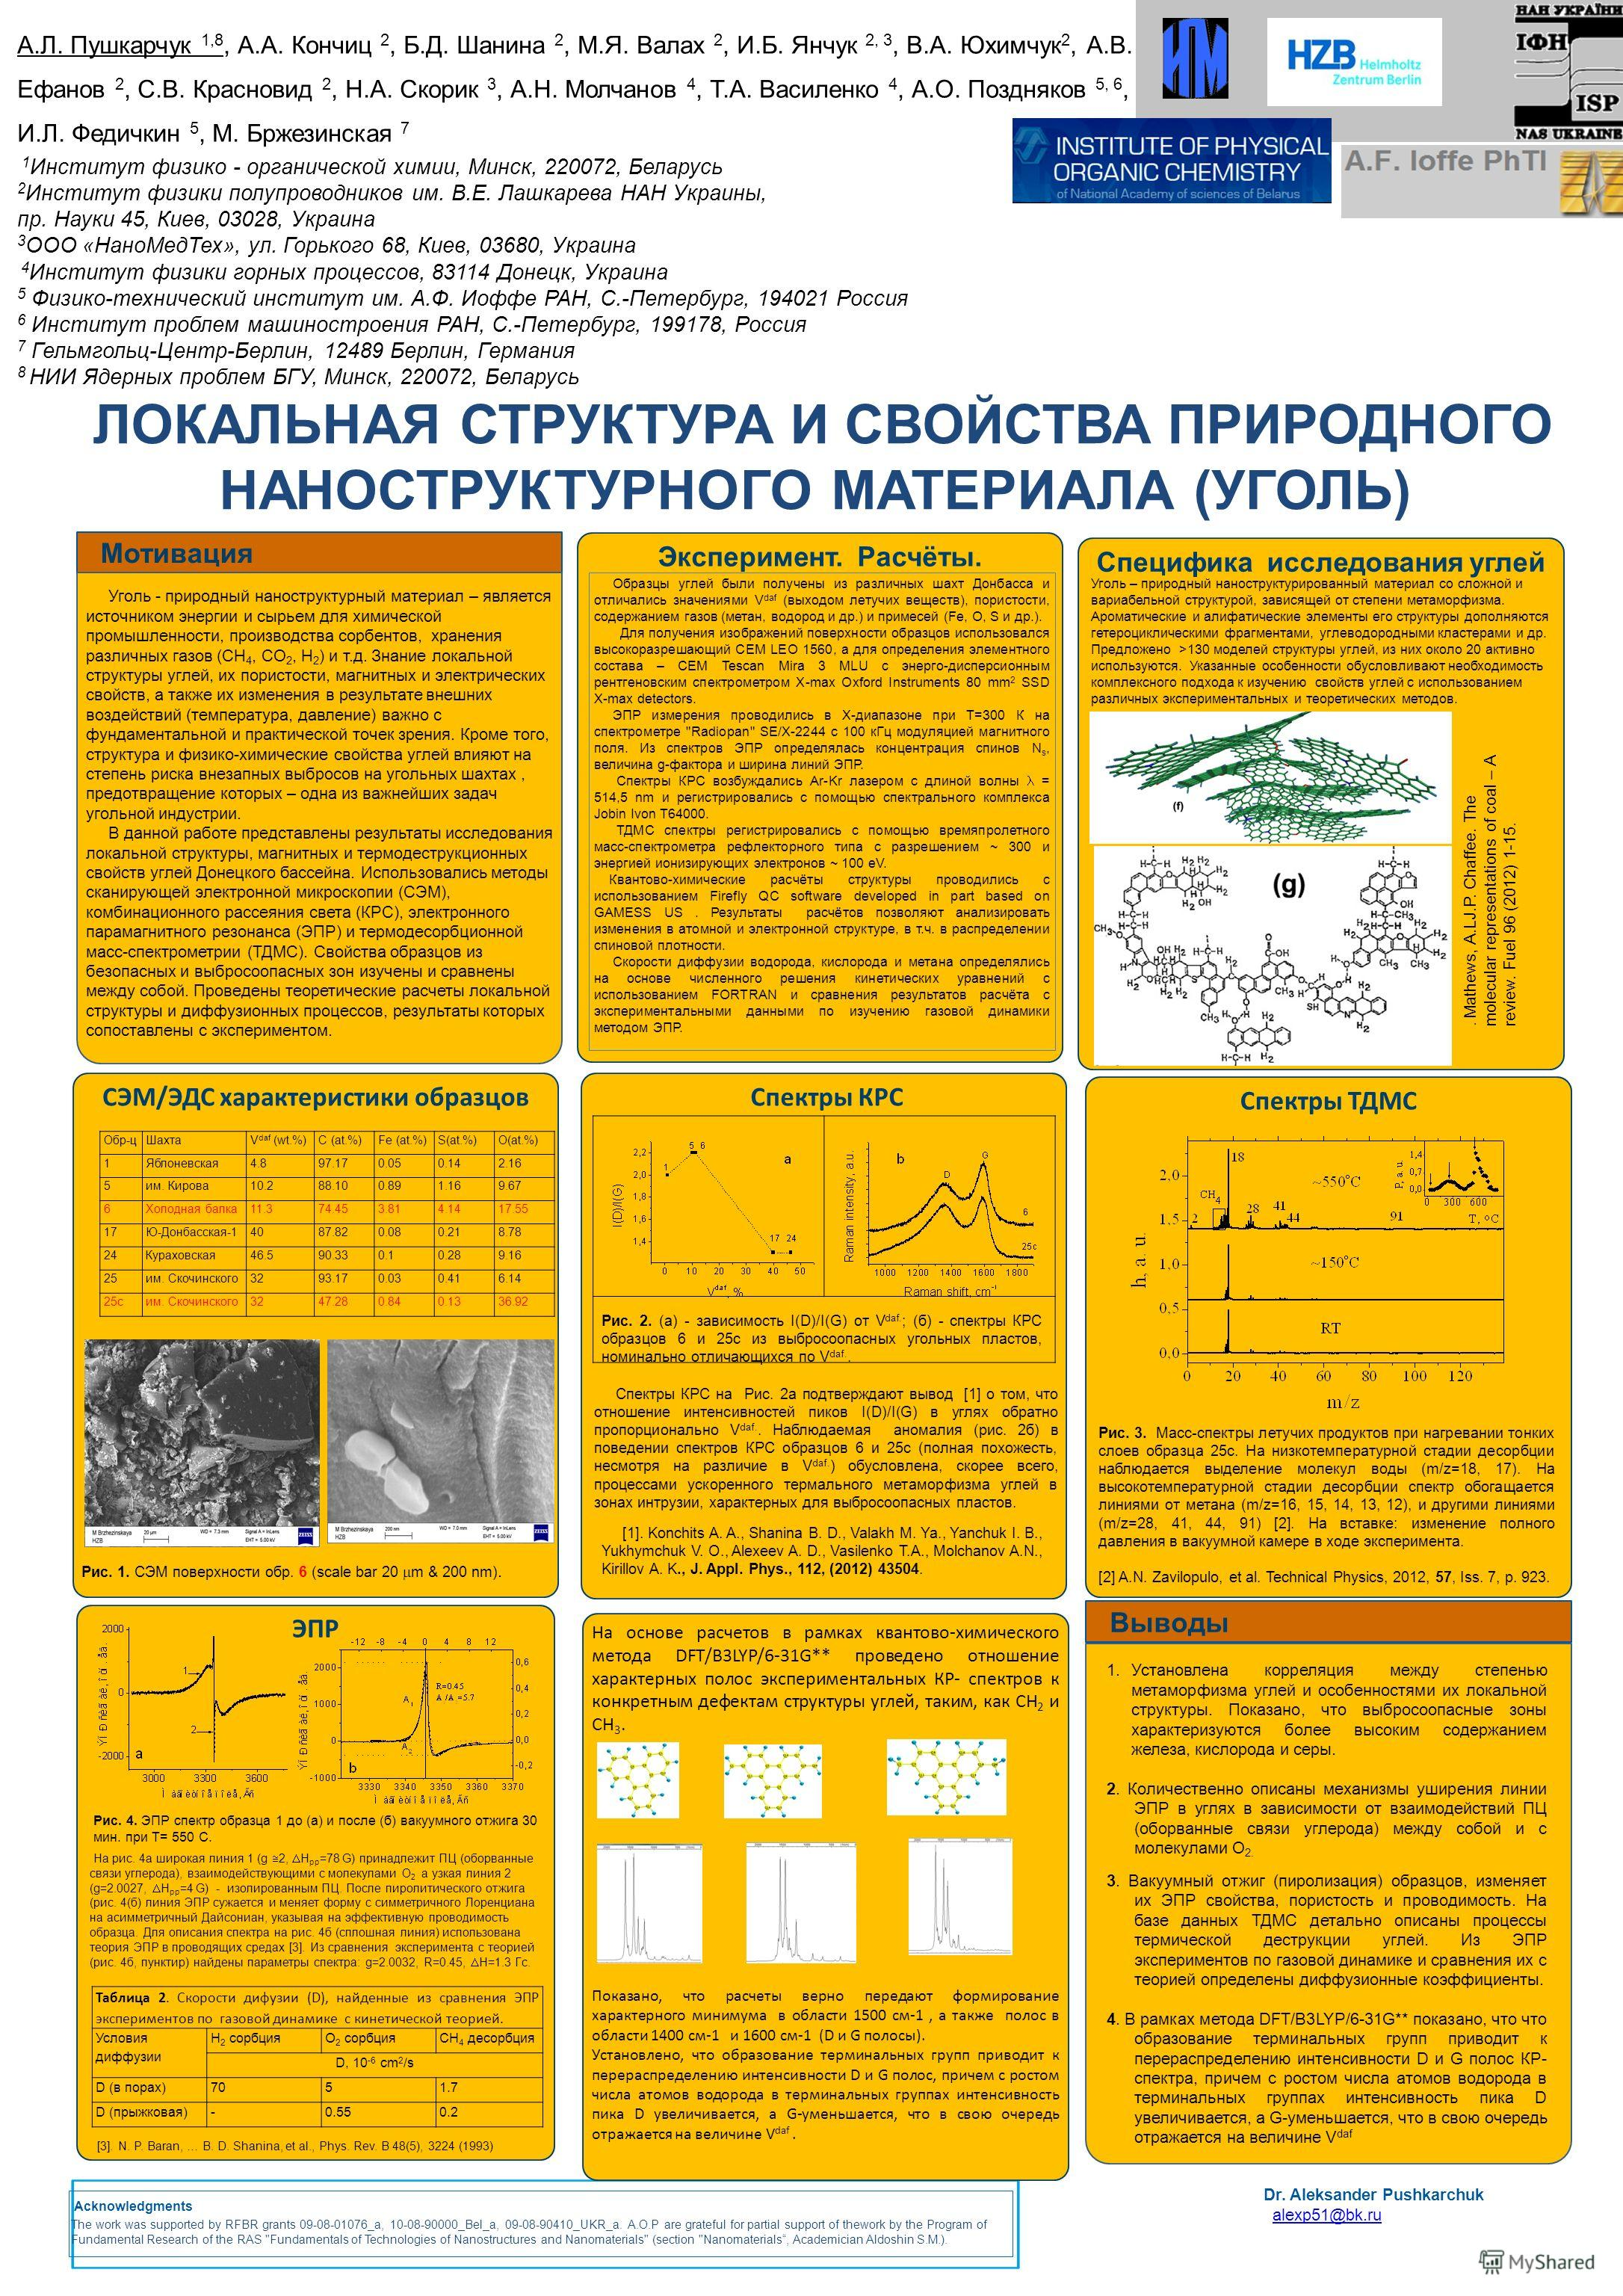 Acknowledgments The work was supported by RFBR grants 09-08-01076_а, 10-08-90000_Bel_а, 09-08-90410_UKR_а. A.O.P are grateful for partial support of thework by the Program of Fundamental Research of the RAS